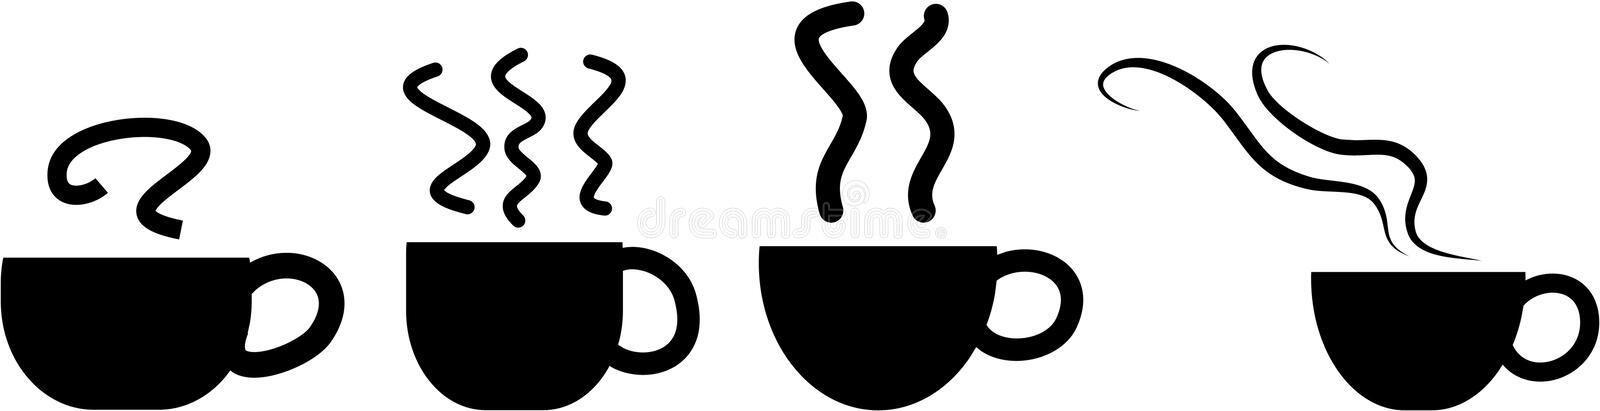 Download Graphismes De Cuvette De Café Illustration Stock - Illustration du cuvettes, objets: 90926